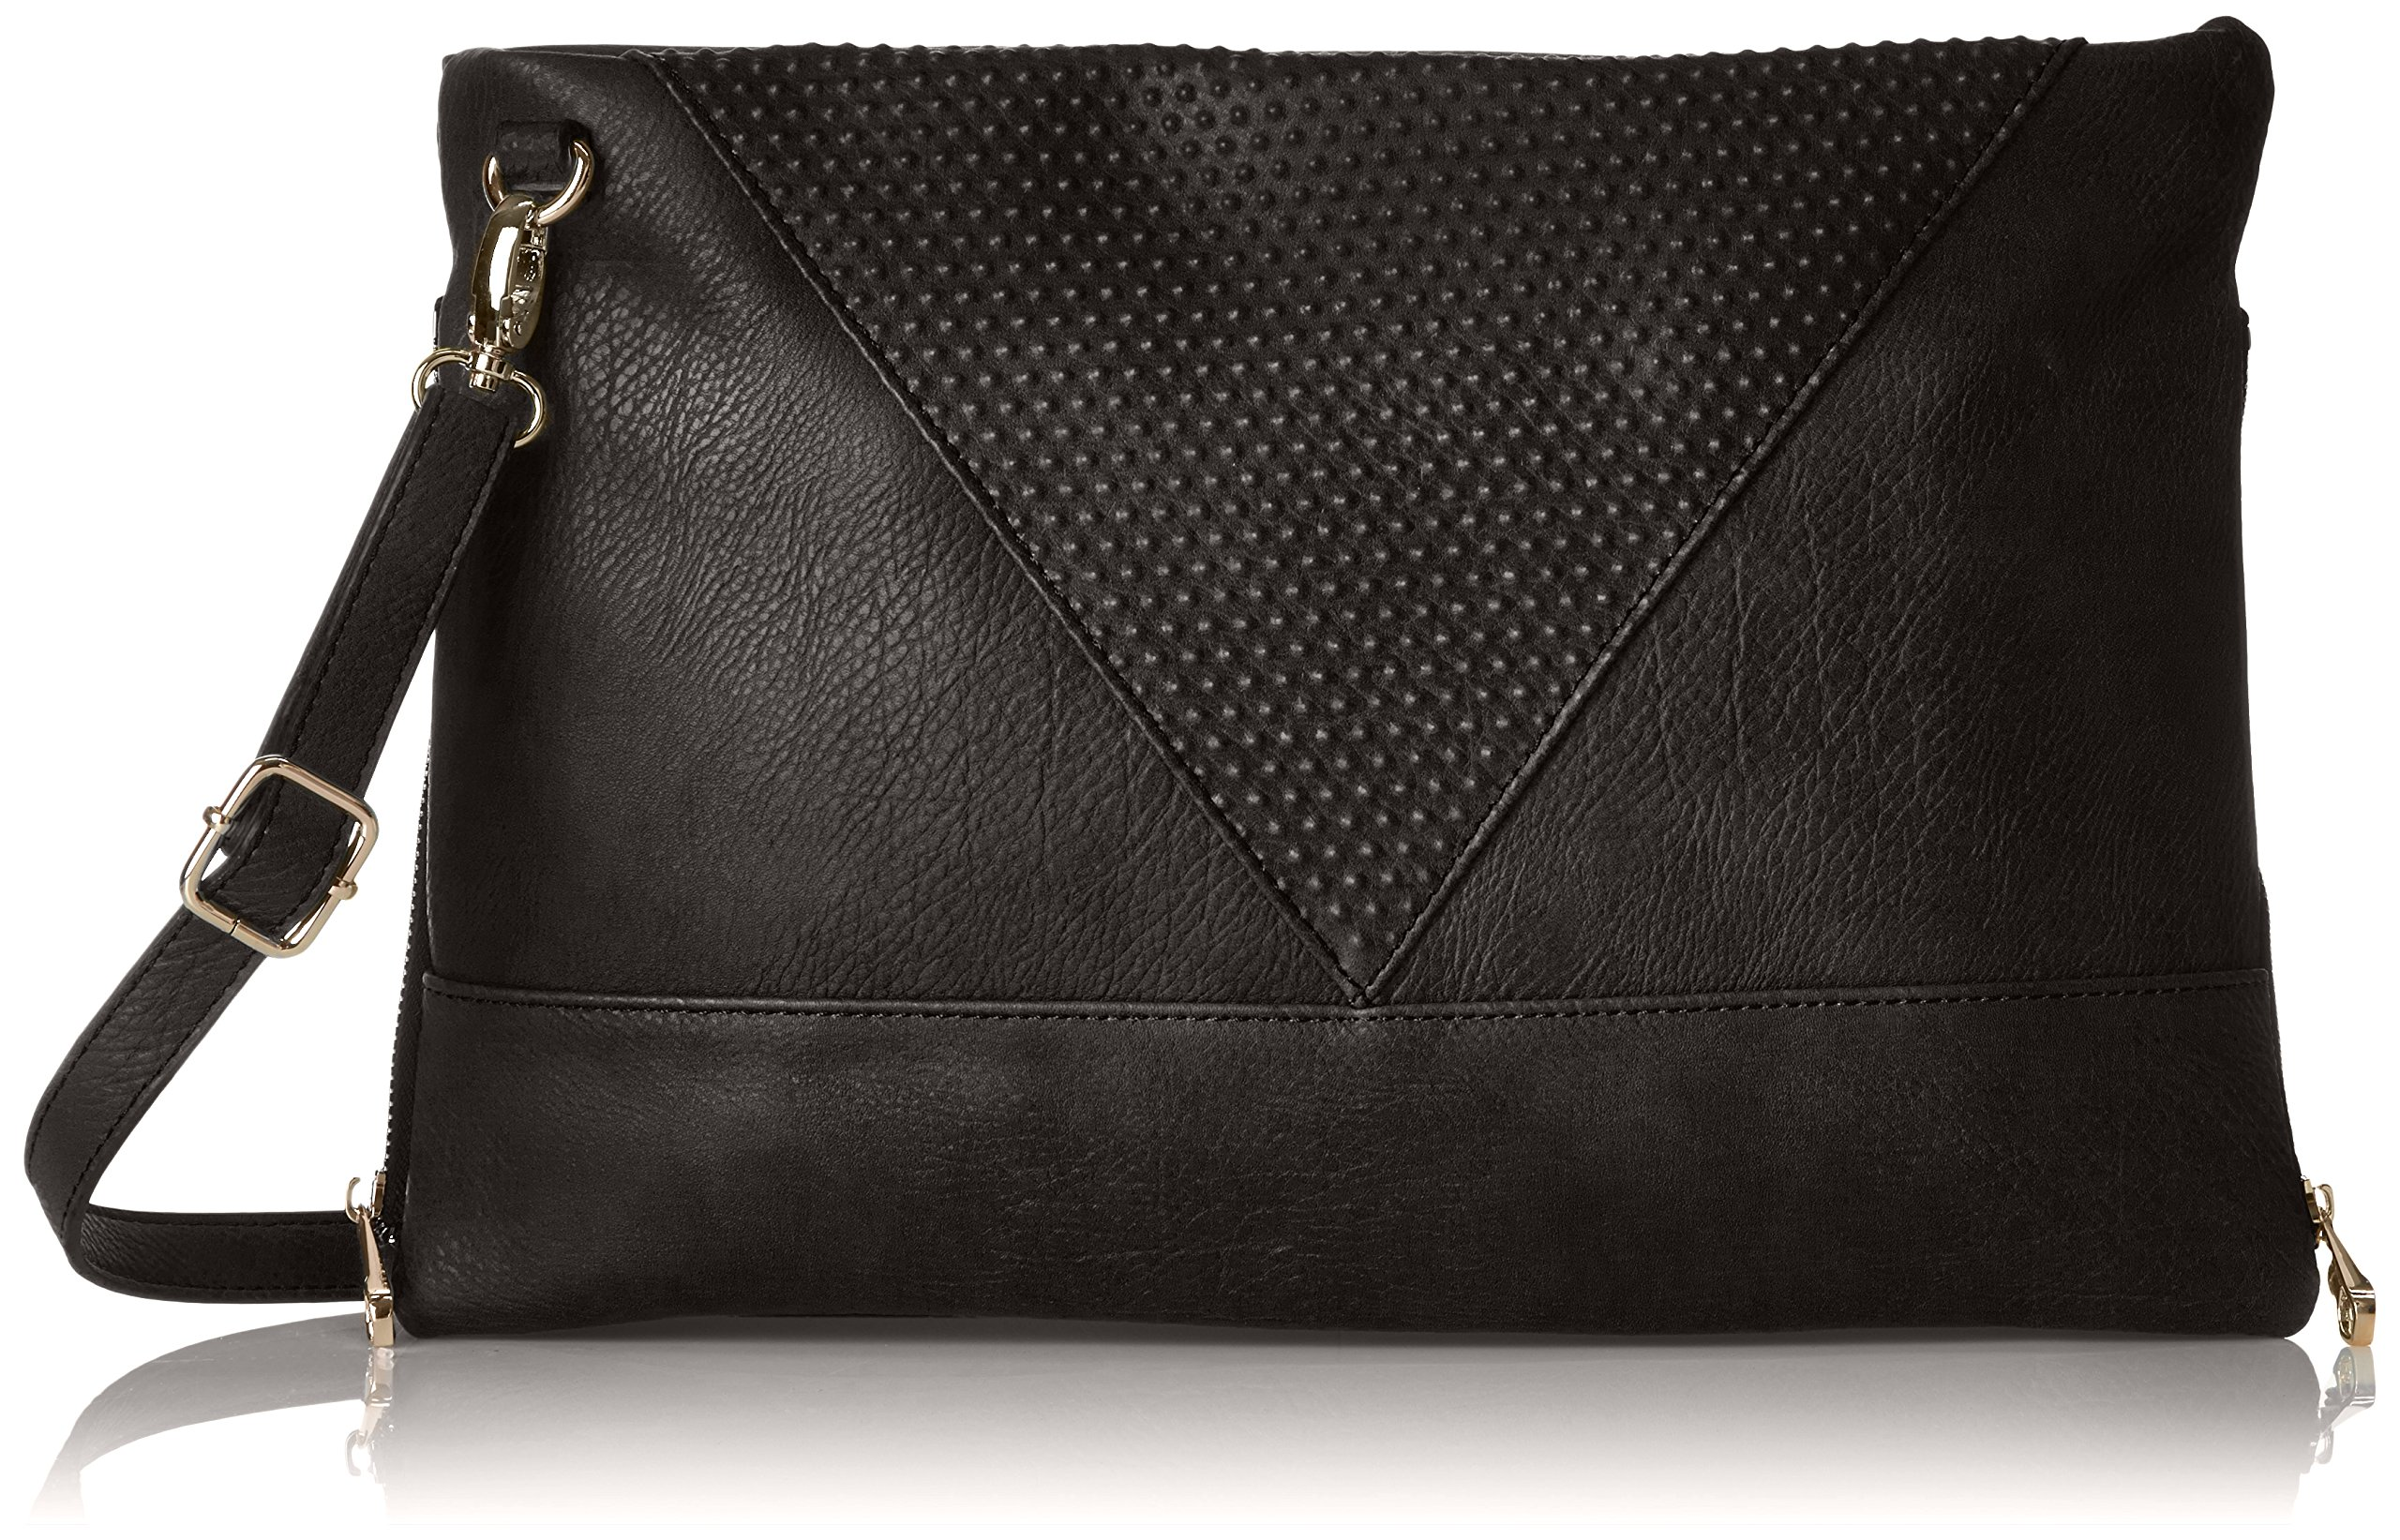 POVERTY FLATS by rian Raised Dot V Cross Body Bag, Black, One Size